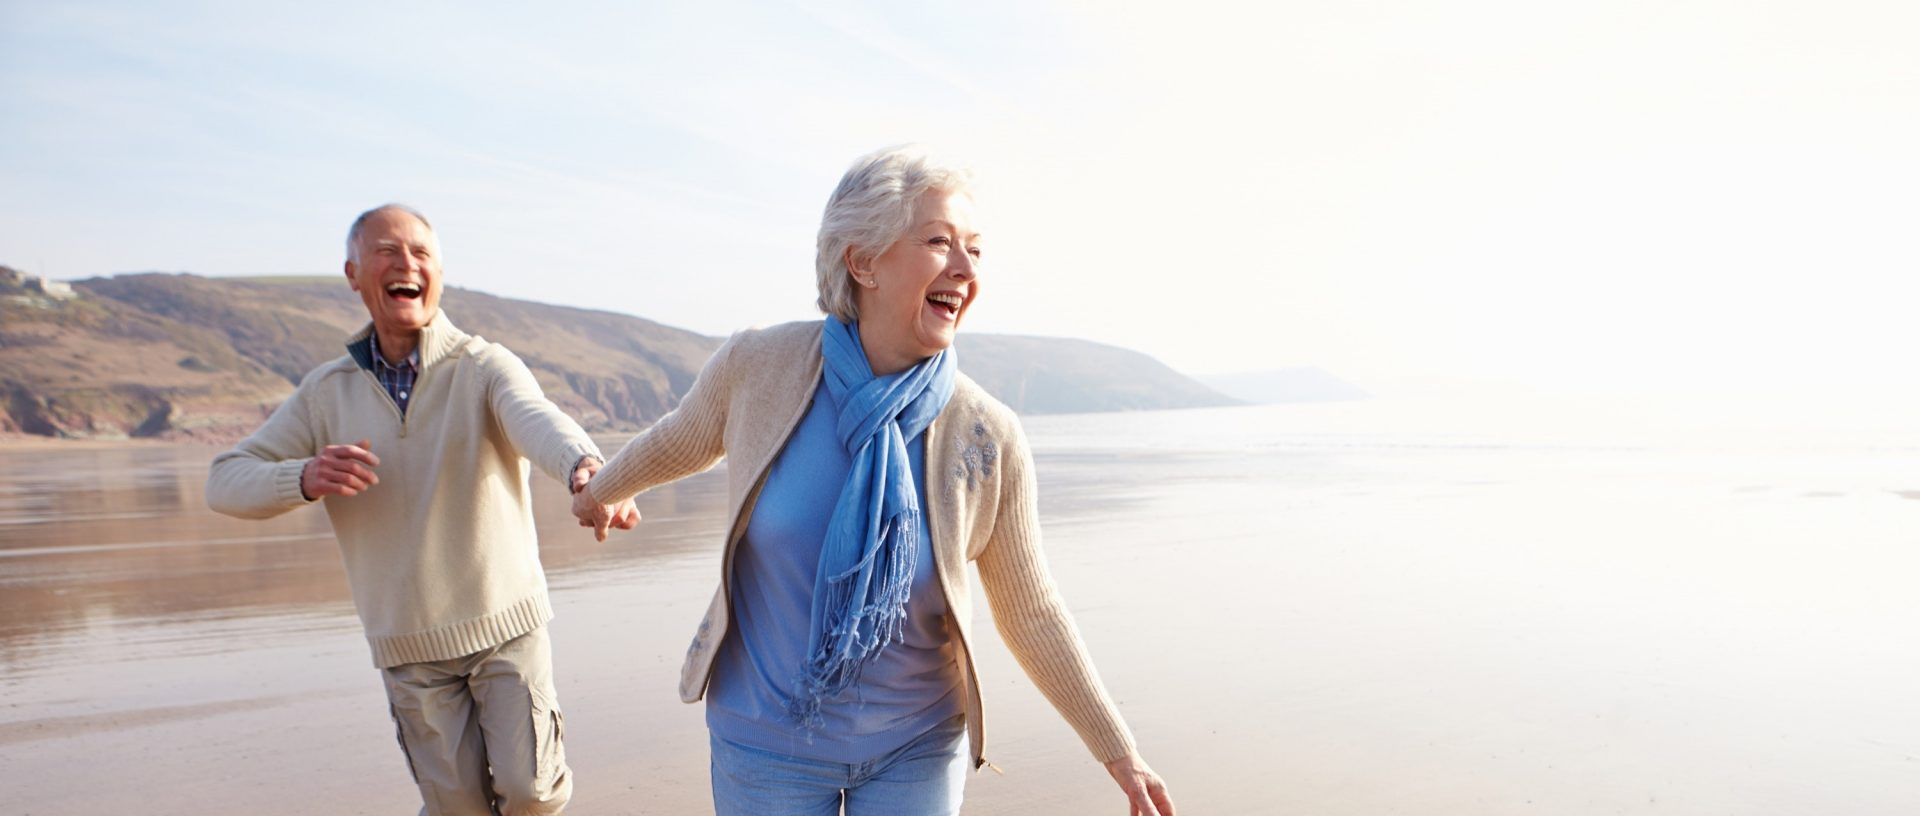 Worried about getting older? How to embrace ageing positively